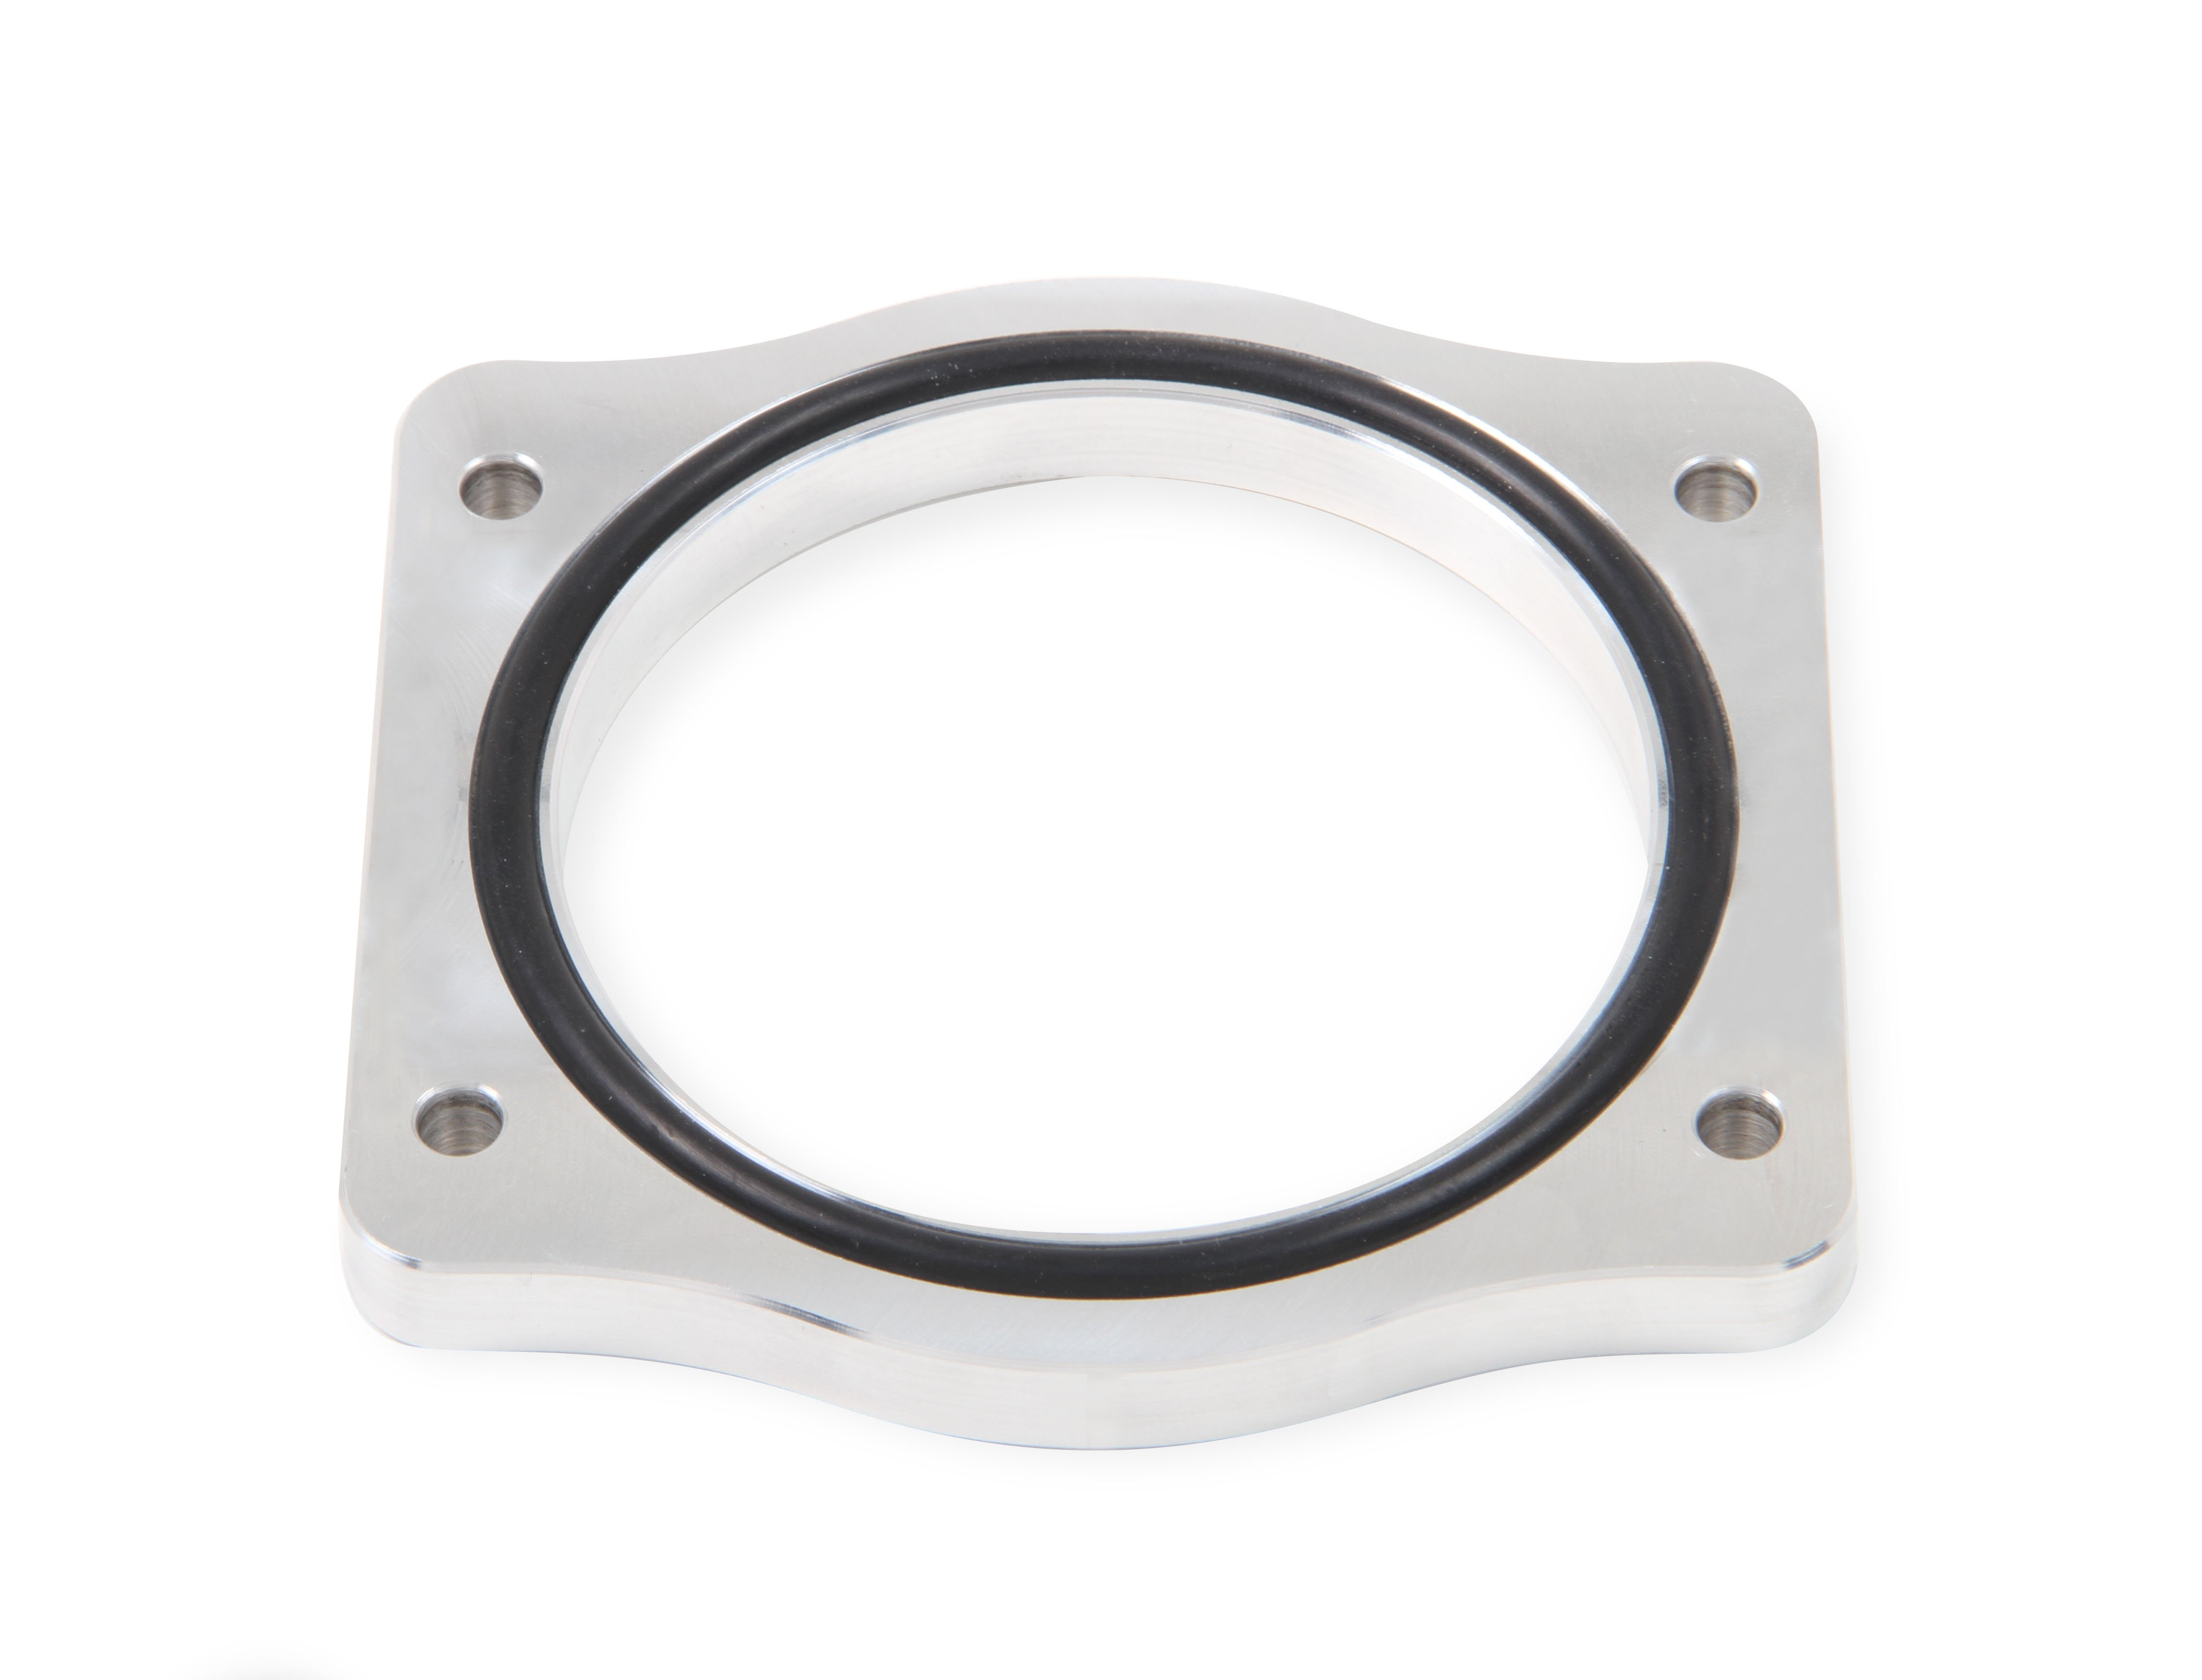 Holley 860010 Fuel Injection Throttle Body Spacer